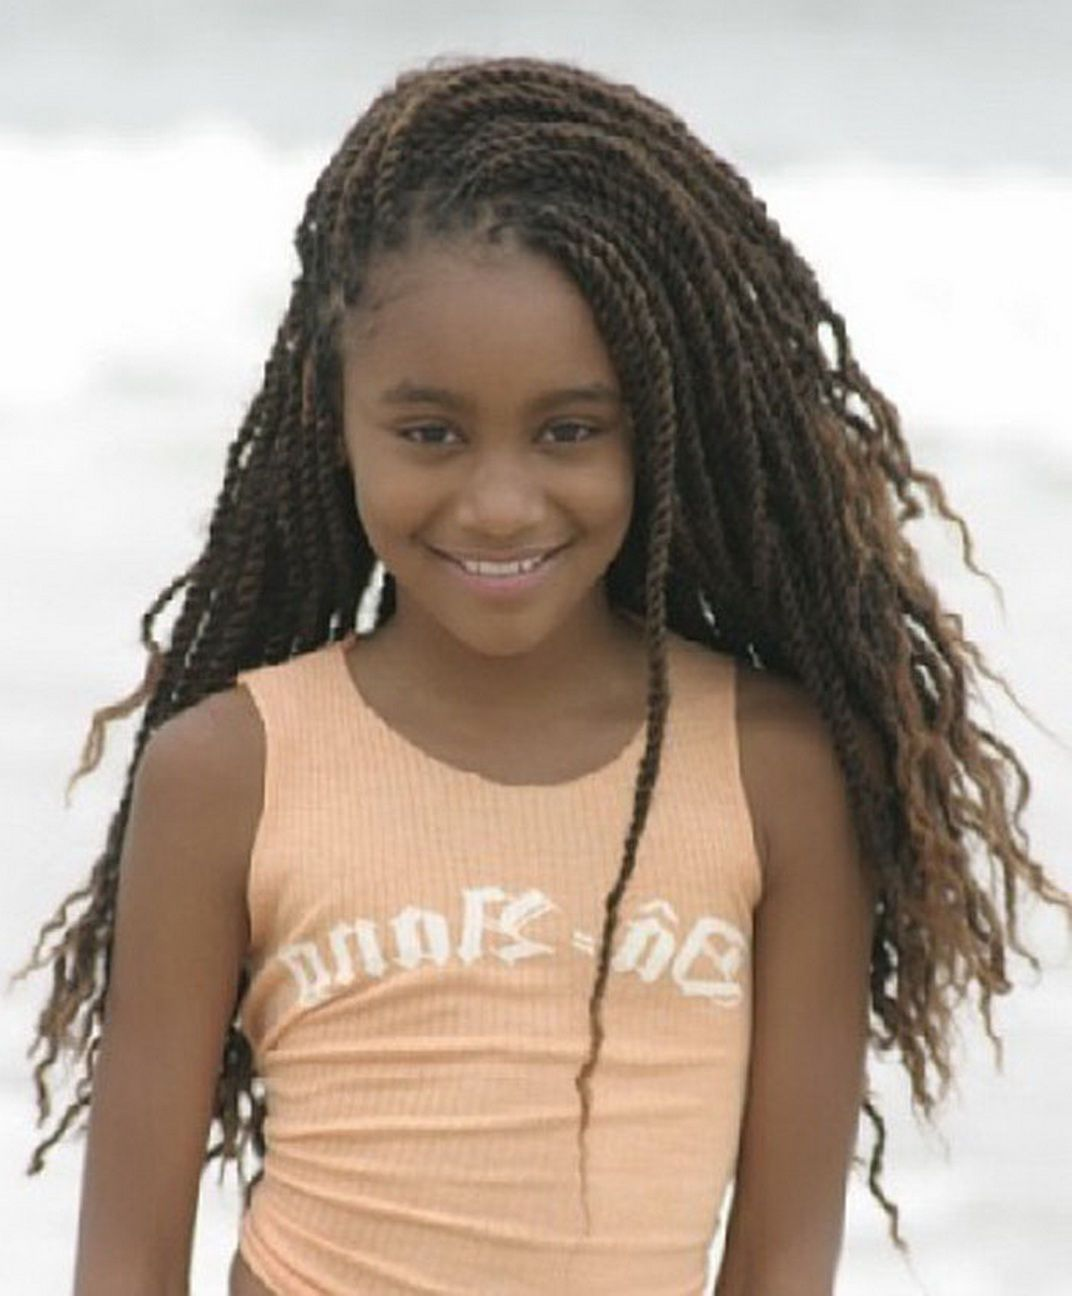 Swell 1000 Images About Cruise Braids 2016 On Pinterest Protective Short Hairstyles For Black Women Fulllsitofus